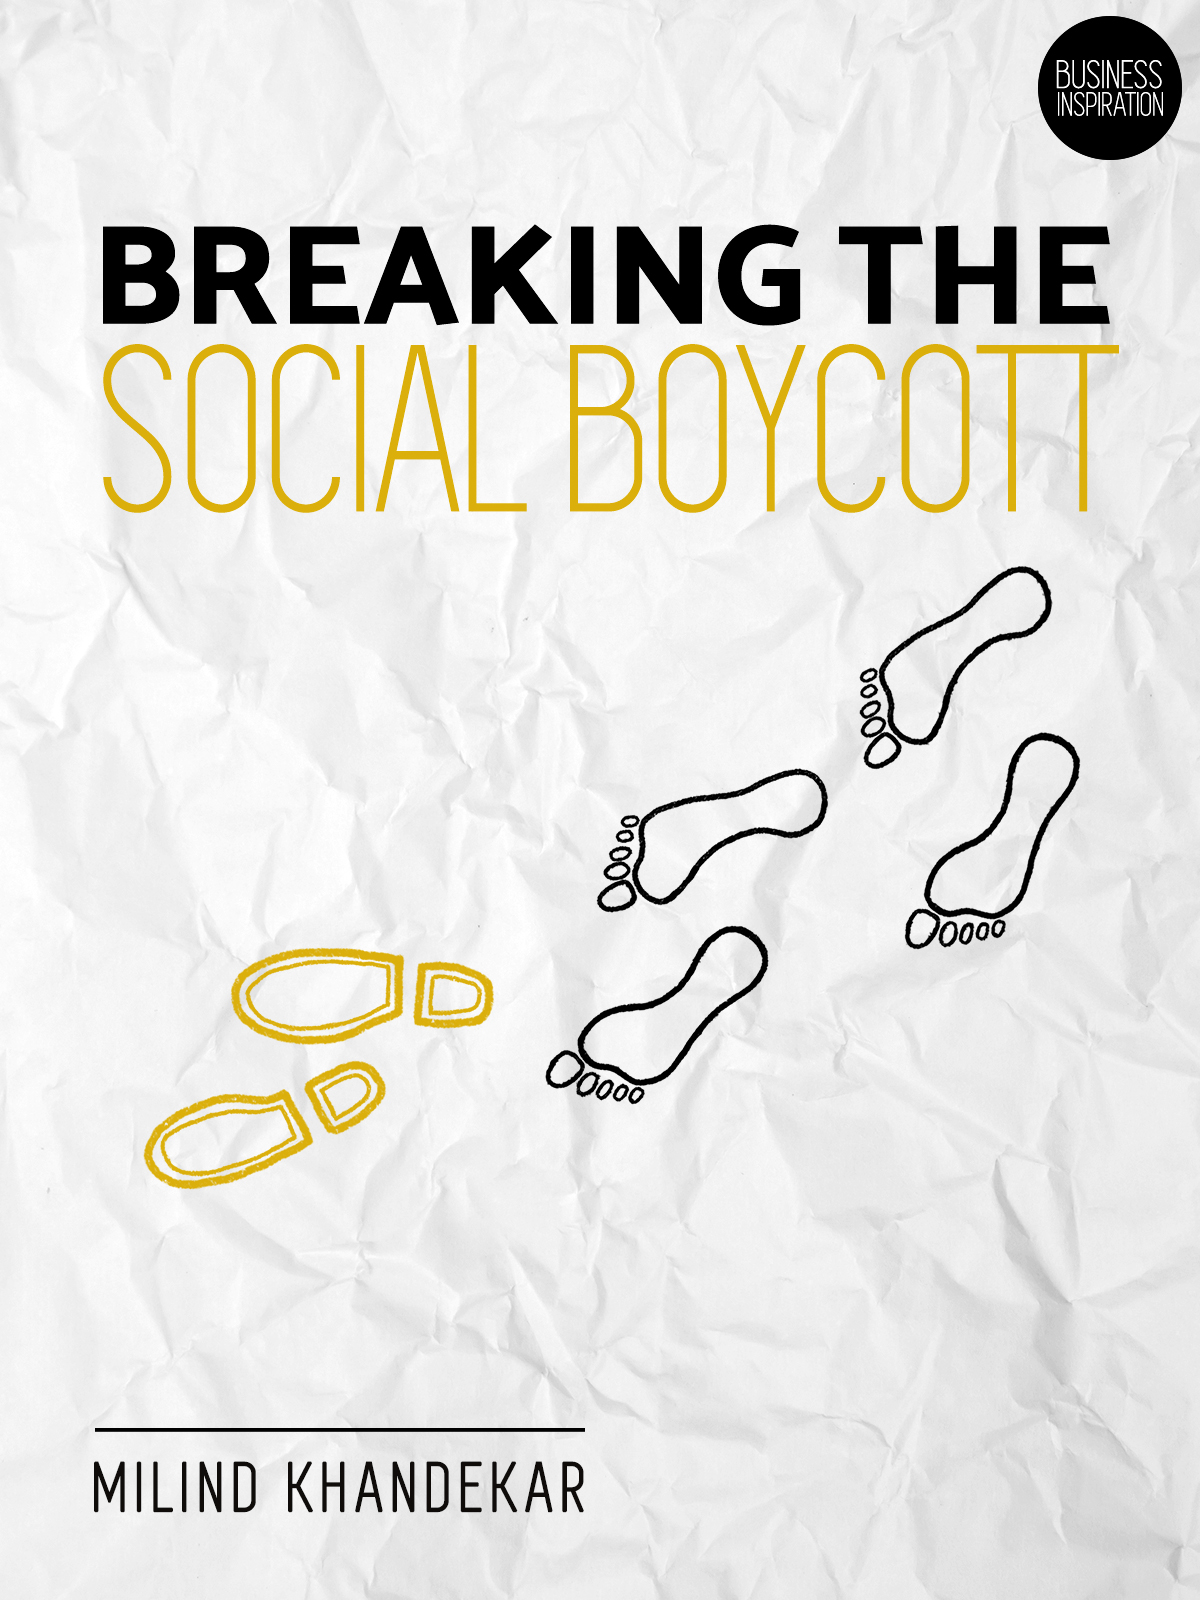 Breaking the social boycott